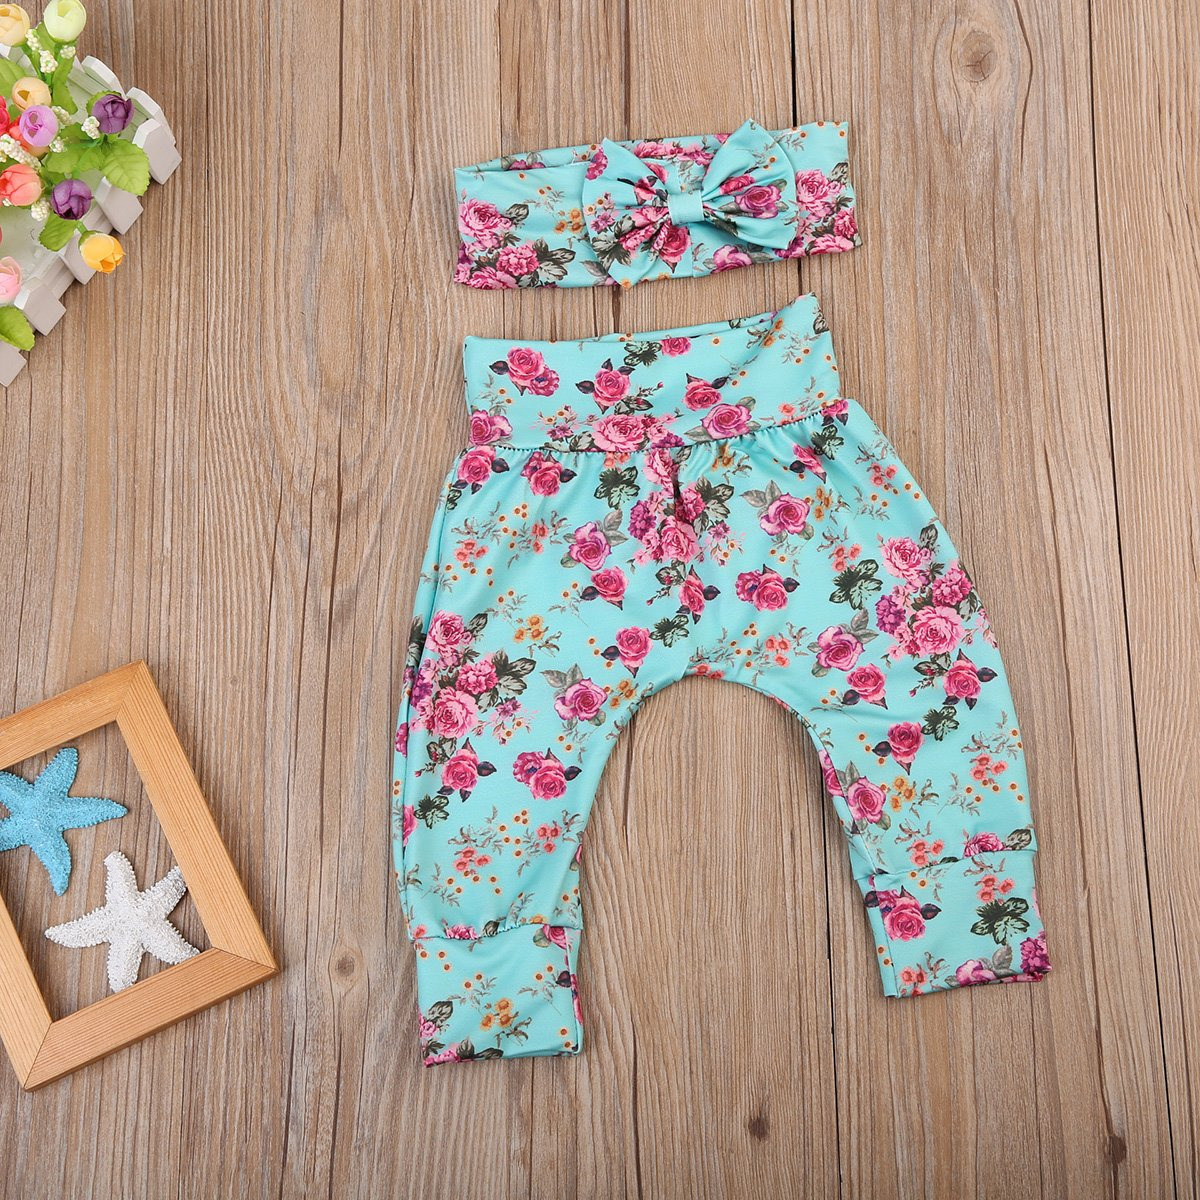 Wild Flower (3 pcs) - Darling Little One